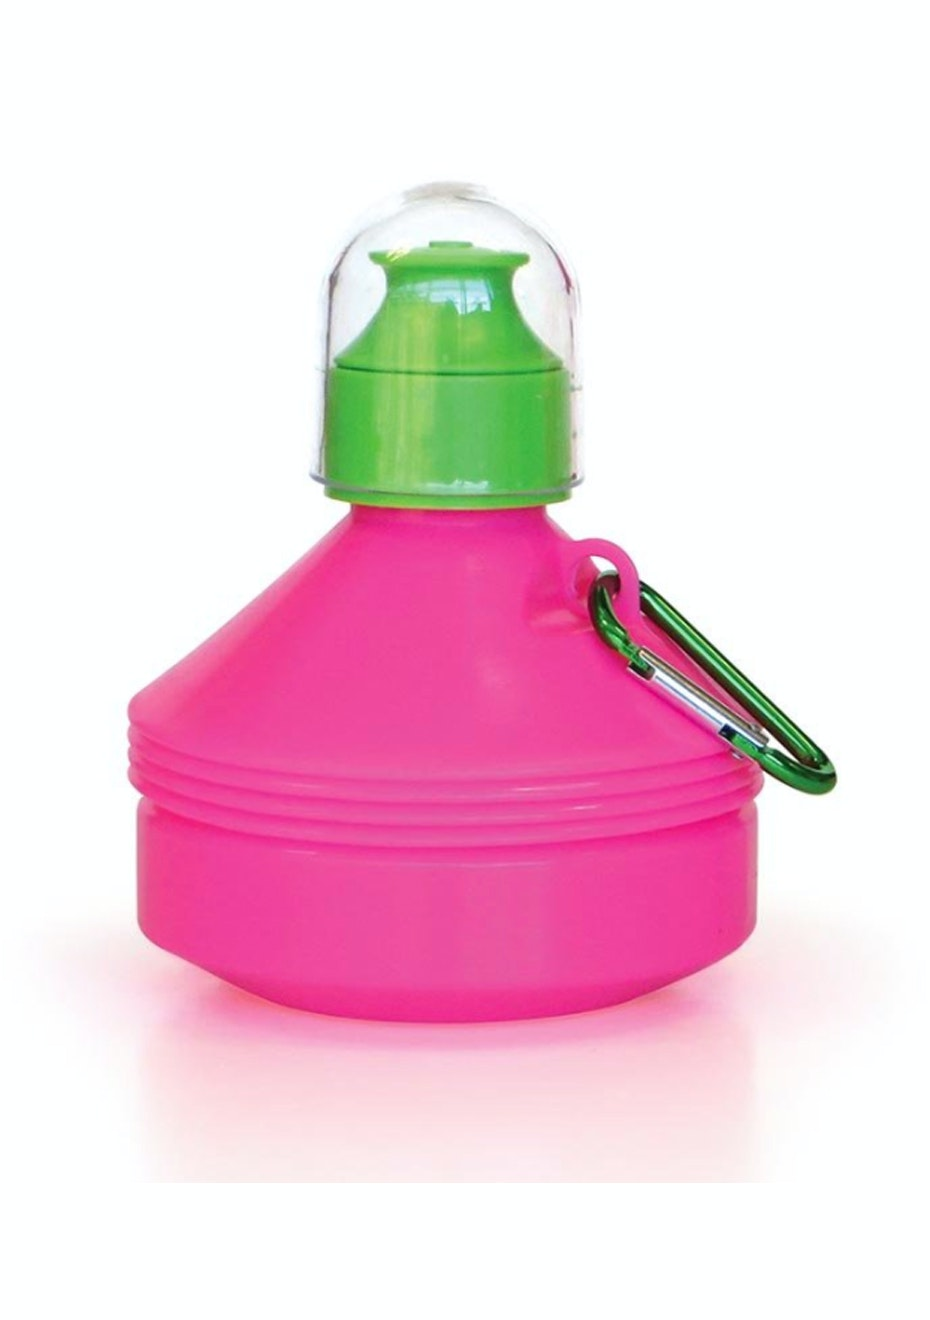 Picnic Essentials - Collapsible Drink Bottle - Pink